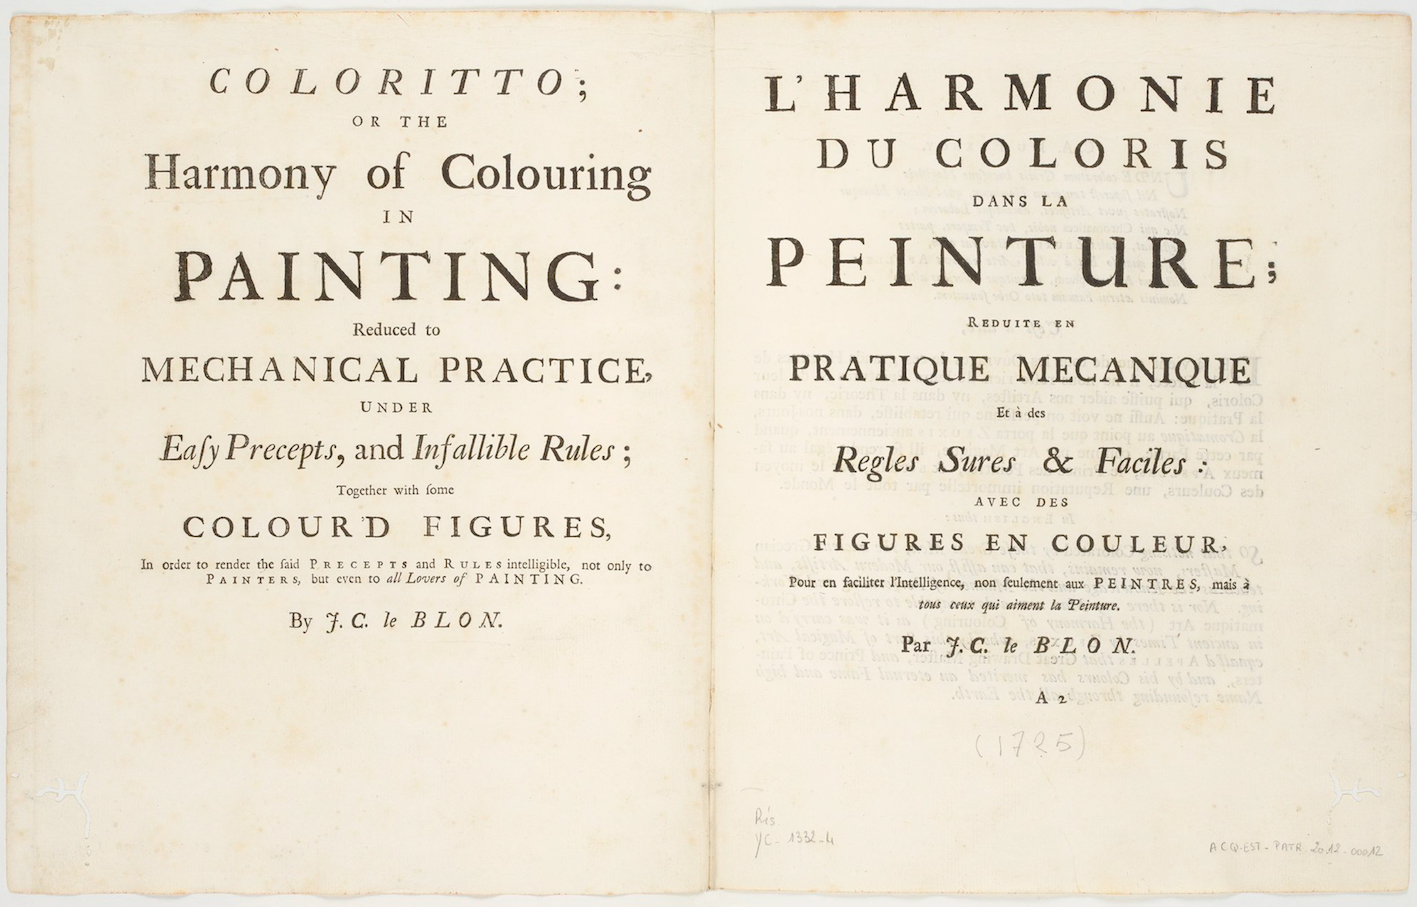 """Opening with English and French titlepages of Le Blon's Coloritto, London 1725; Bibliothèque nationale de France, département Estampes et photographie, RESERVE 4-YC-1332."""